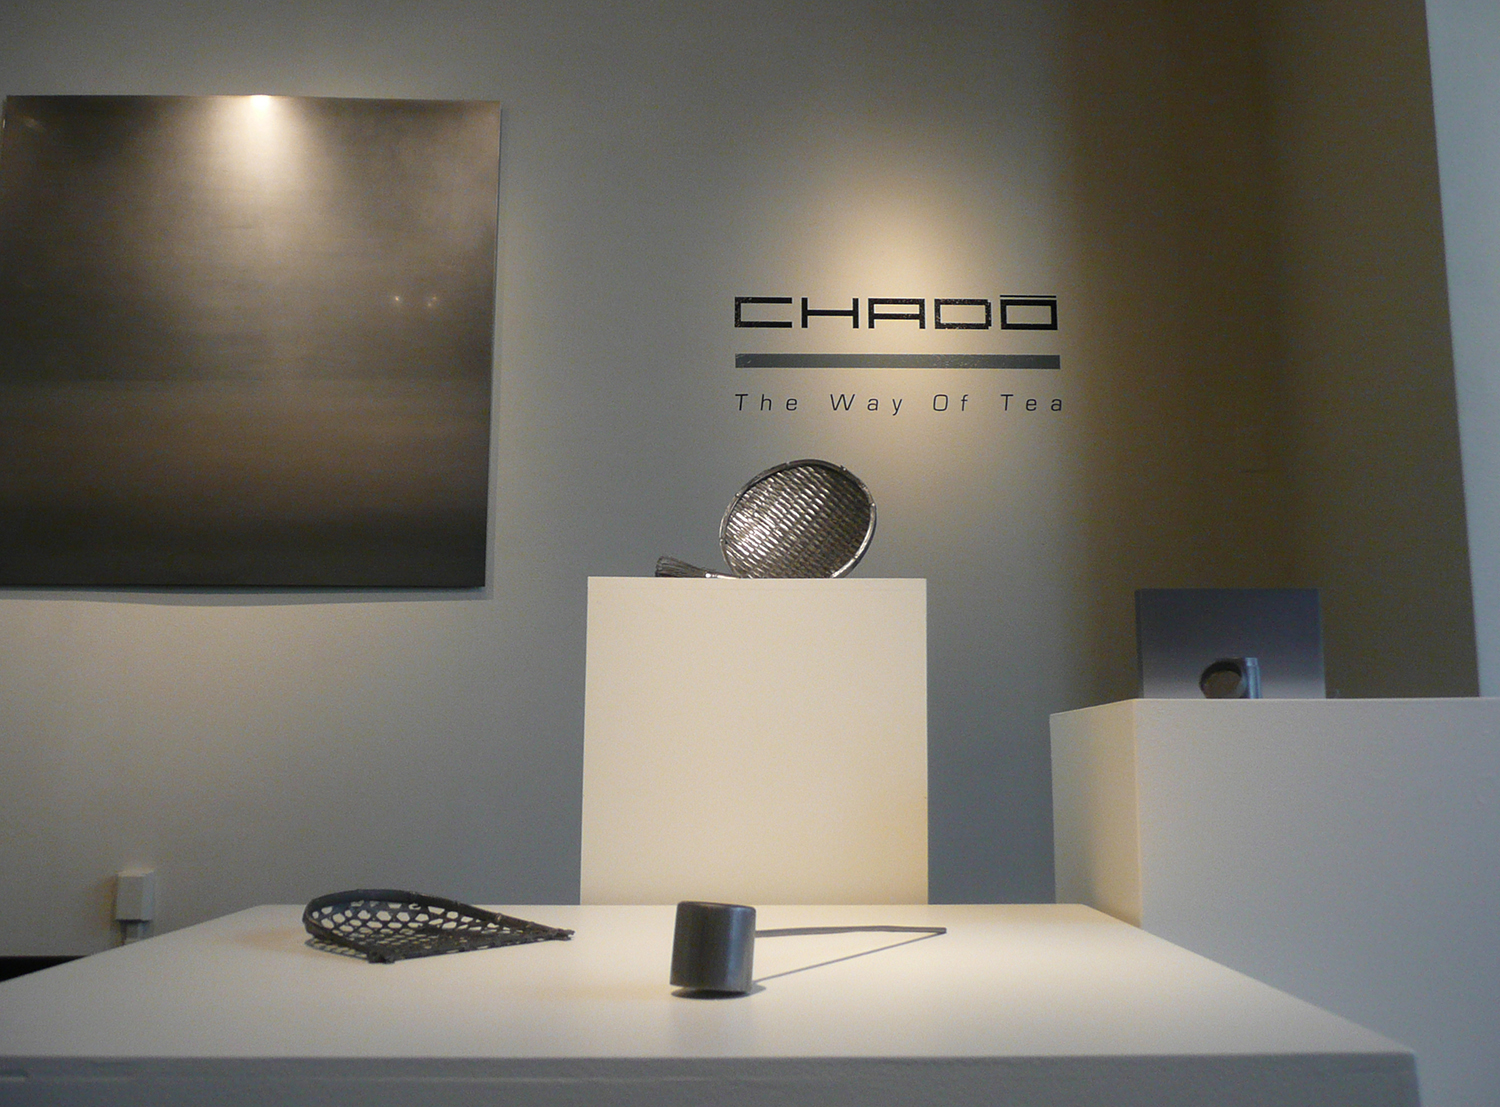 """CHADO: THE WAY OF TEA,"" ARTXCHANGE GALLERY, SEATTLE, WA 2011"